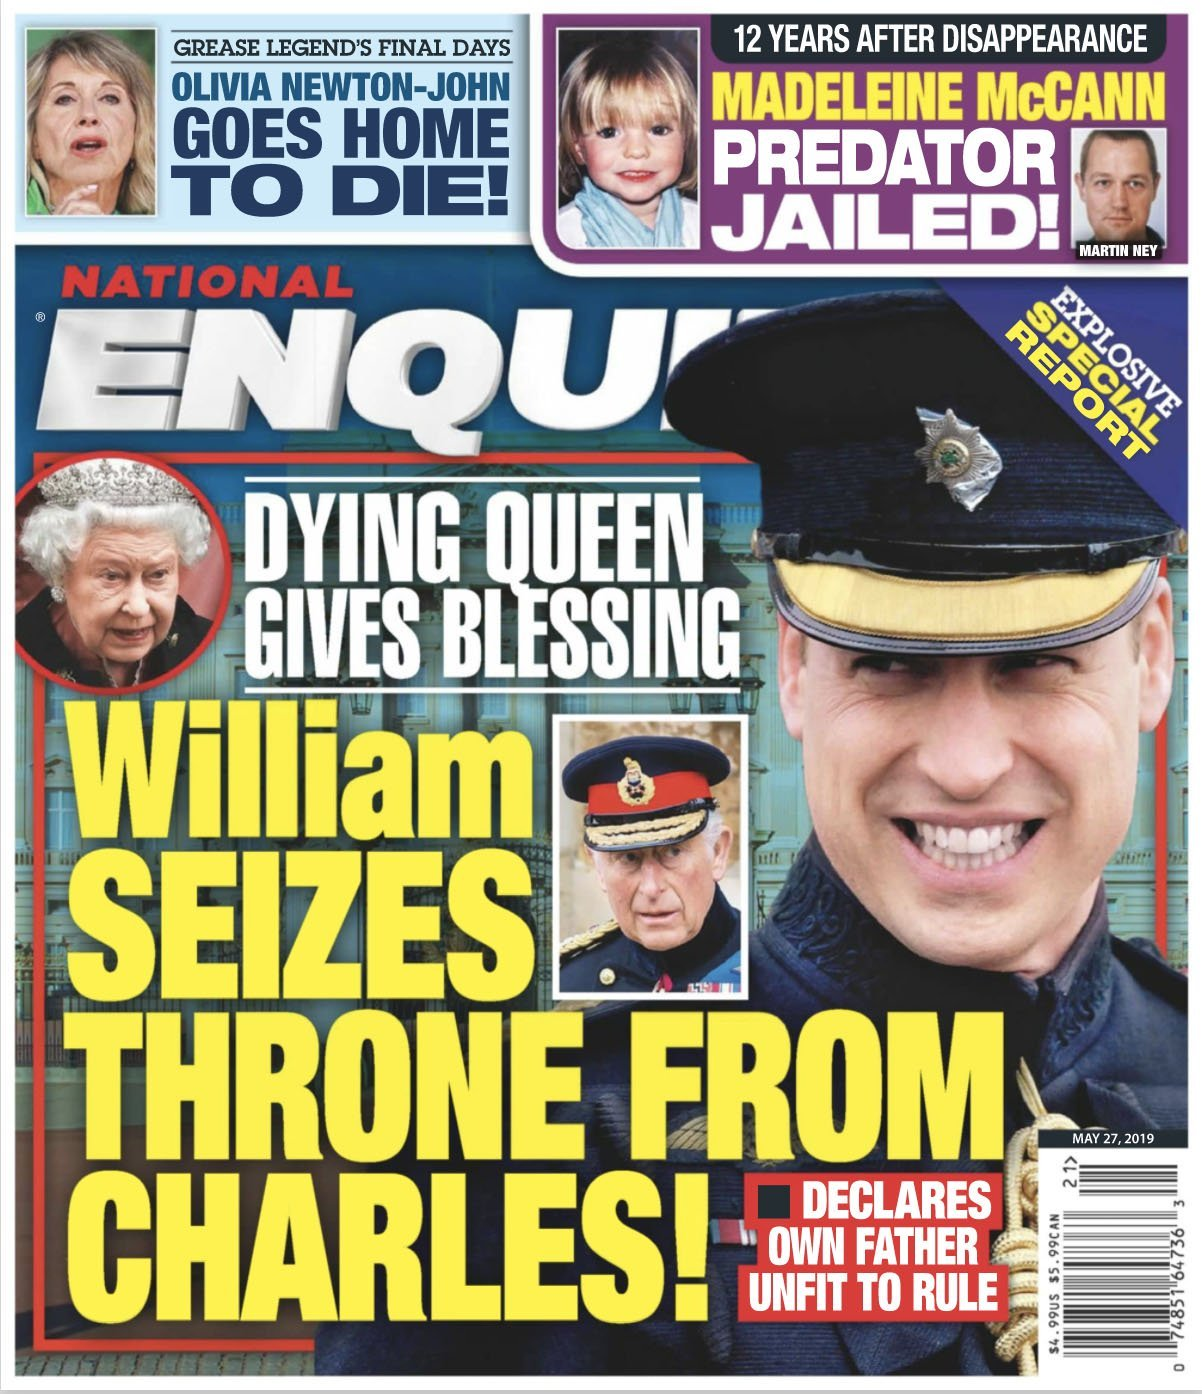 Prince William on the cover of National Enquirer with a headline claiming he has seized the throne.